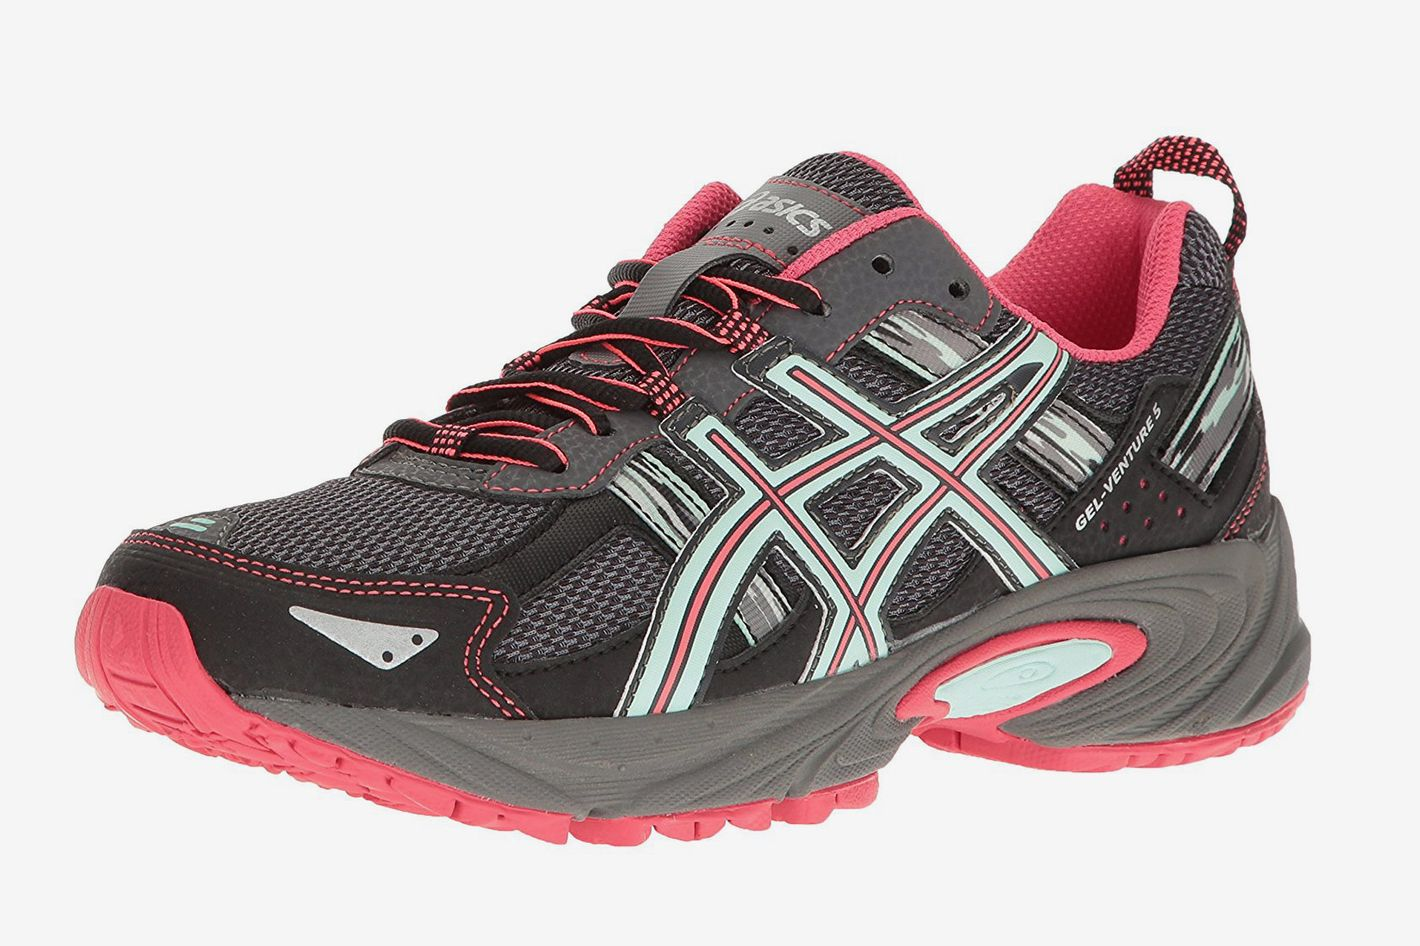 5582486d0e4f ASICS Women s GEL-Venture 5 Running Shoe at Amazon. Buy